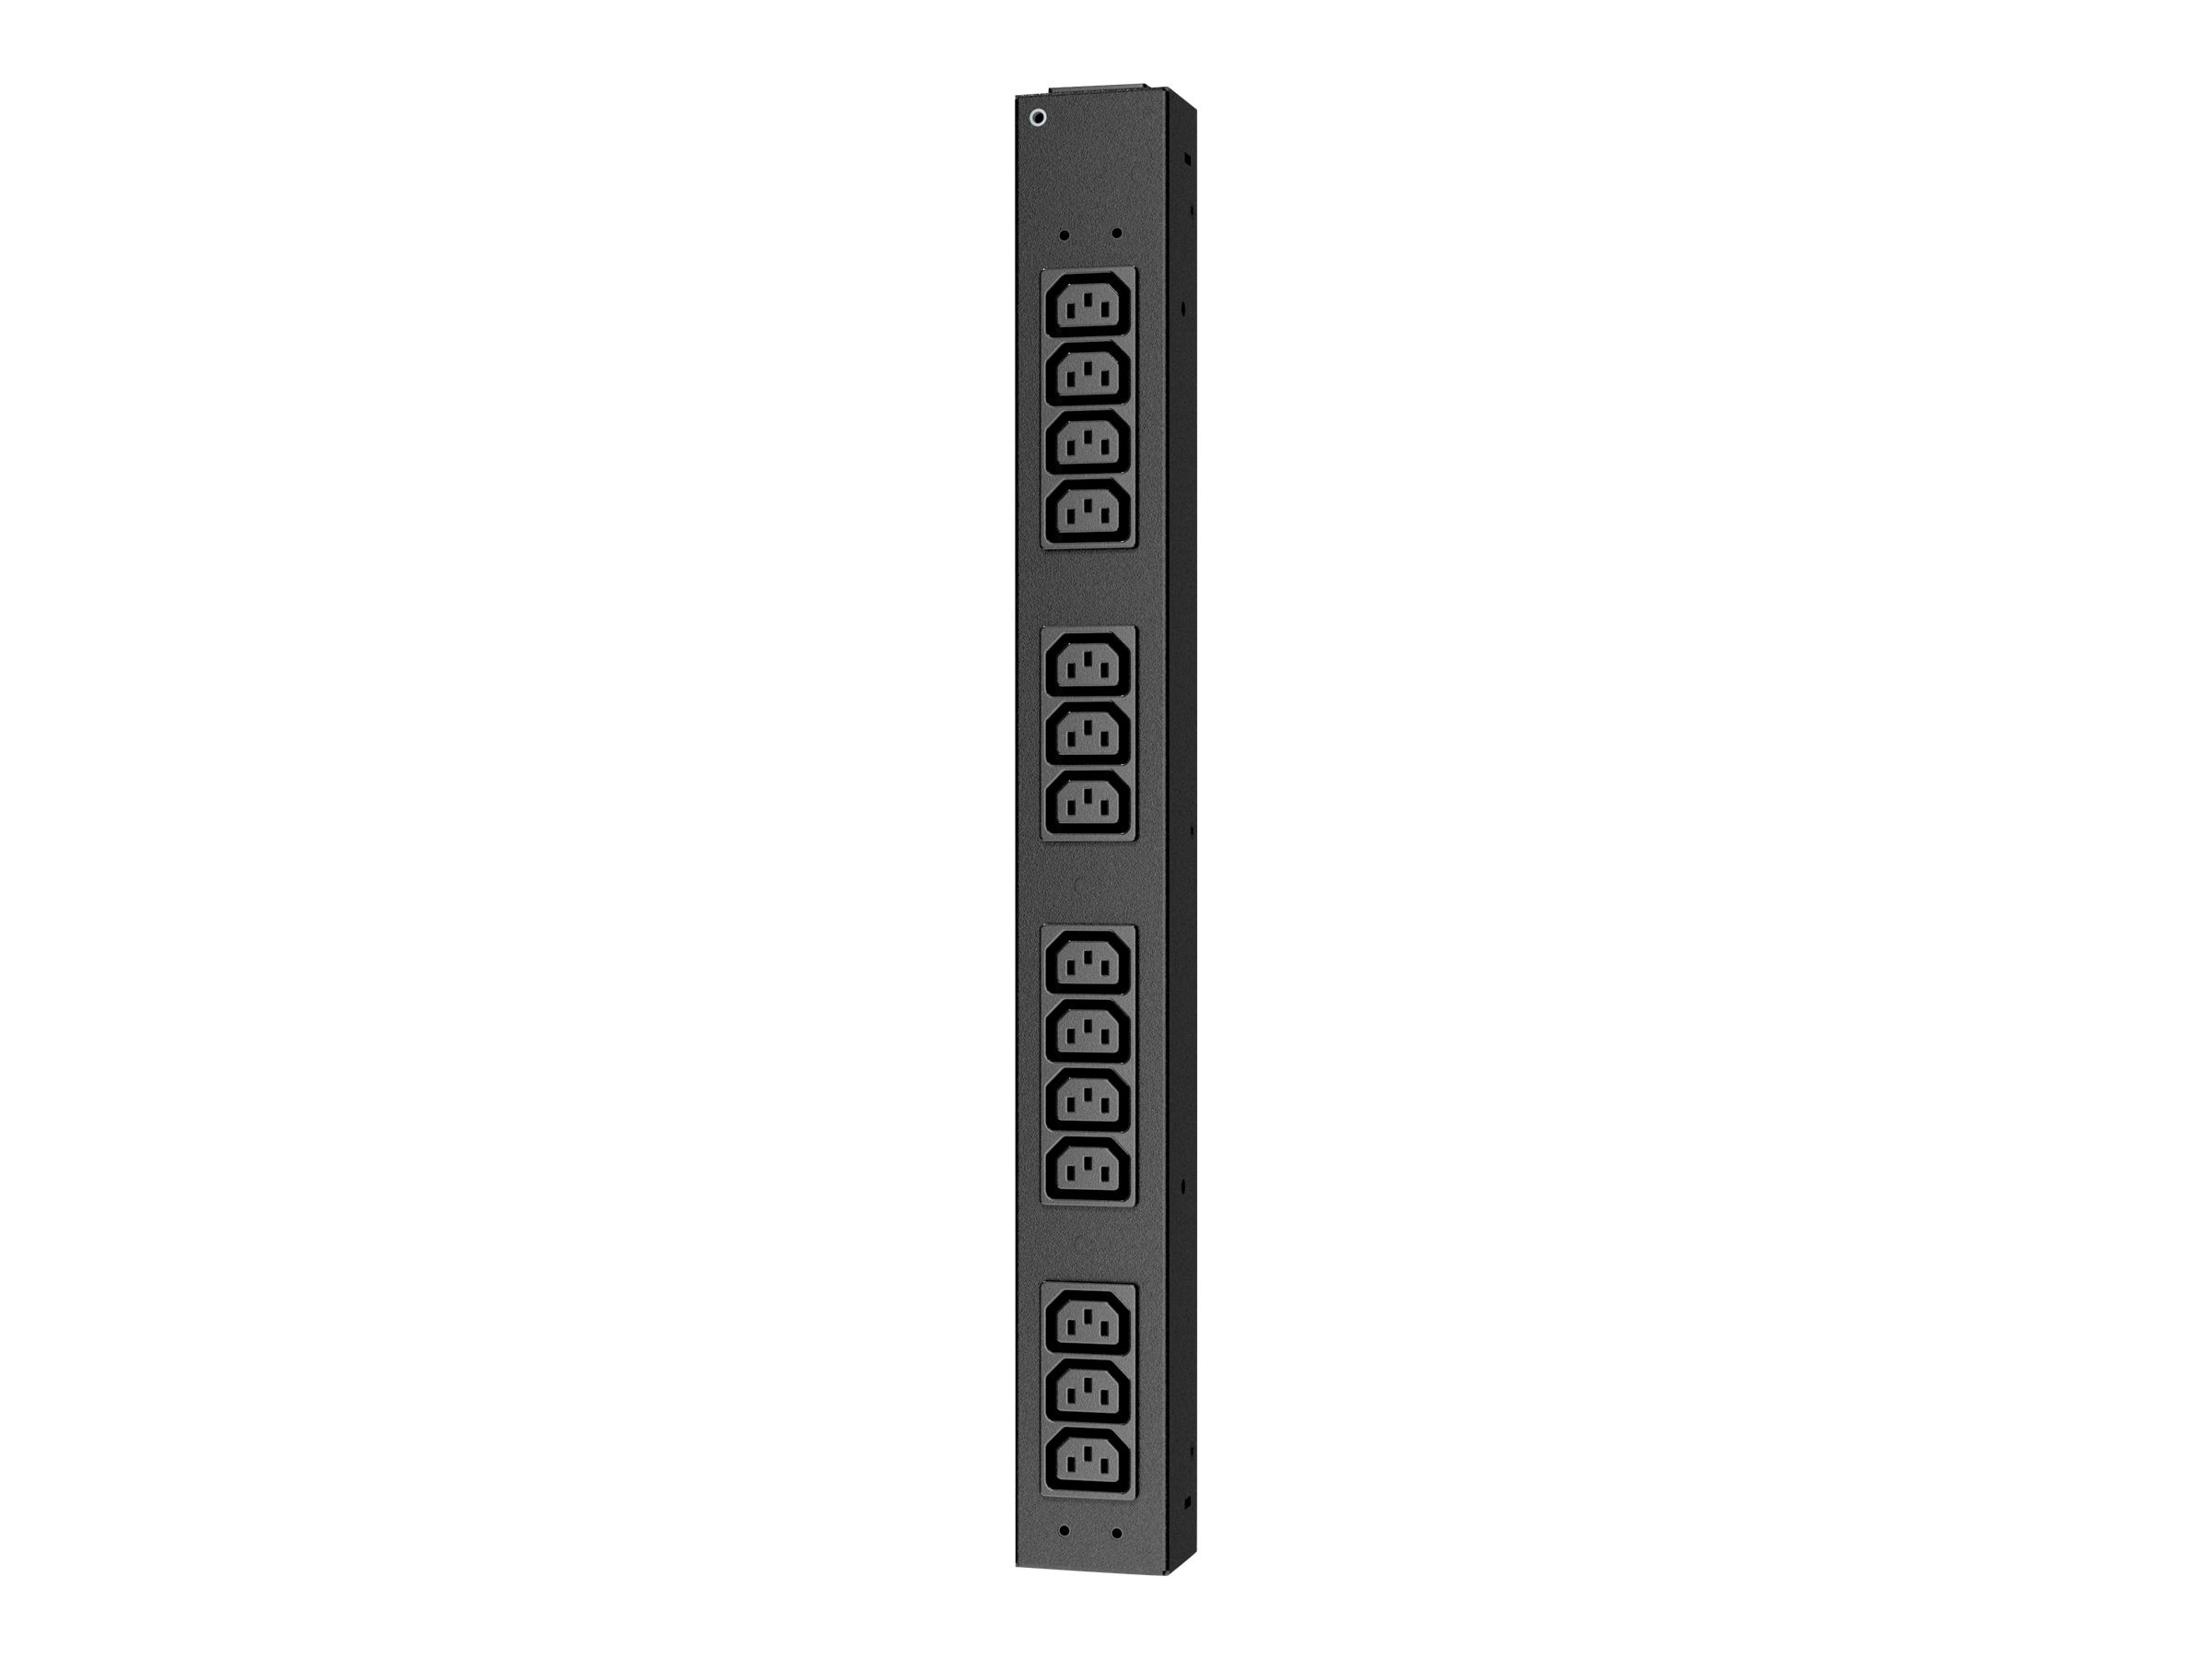 APC Rack PDU Basic Half-Height 100-240V 20A, 220-240V 16A (14) C13, AP6003A